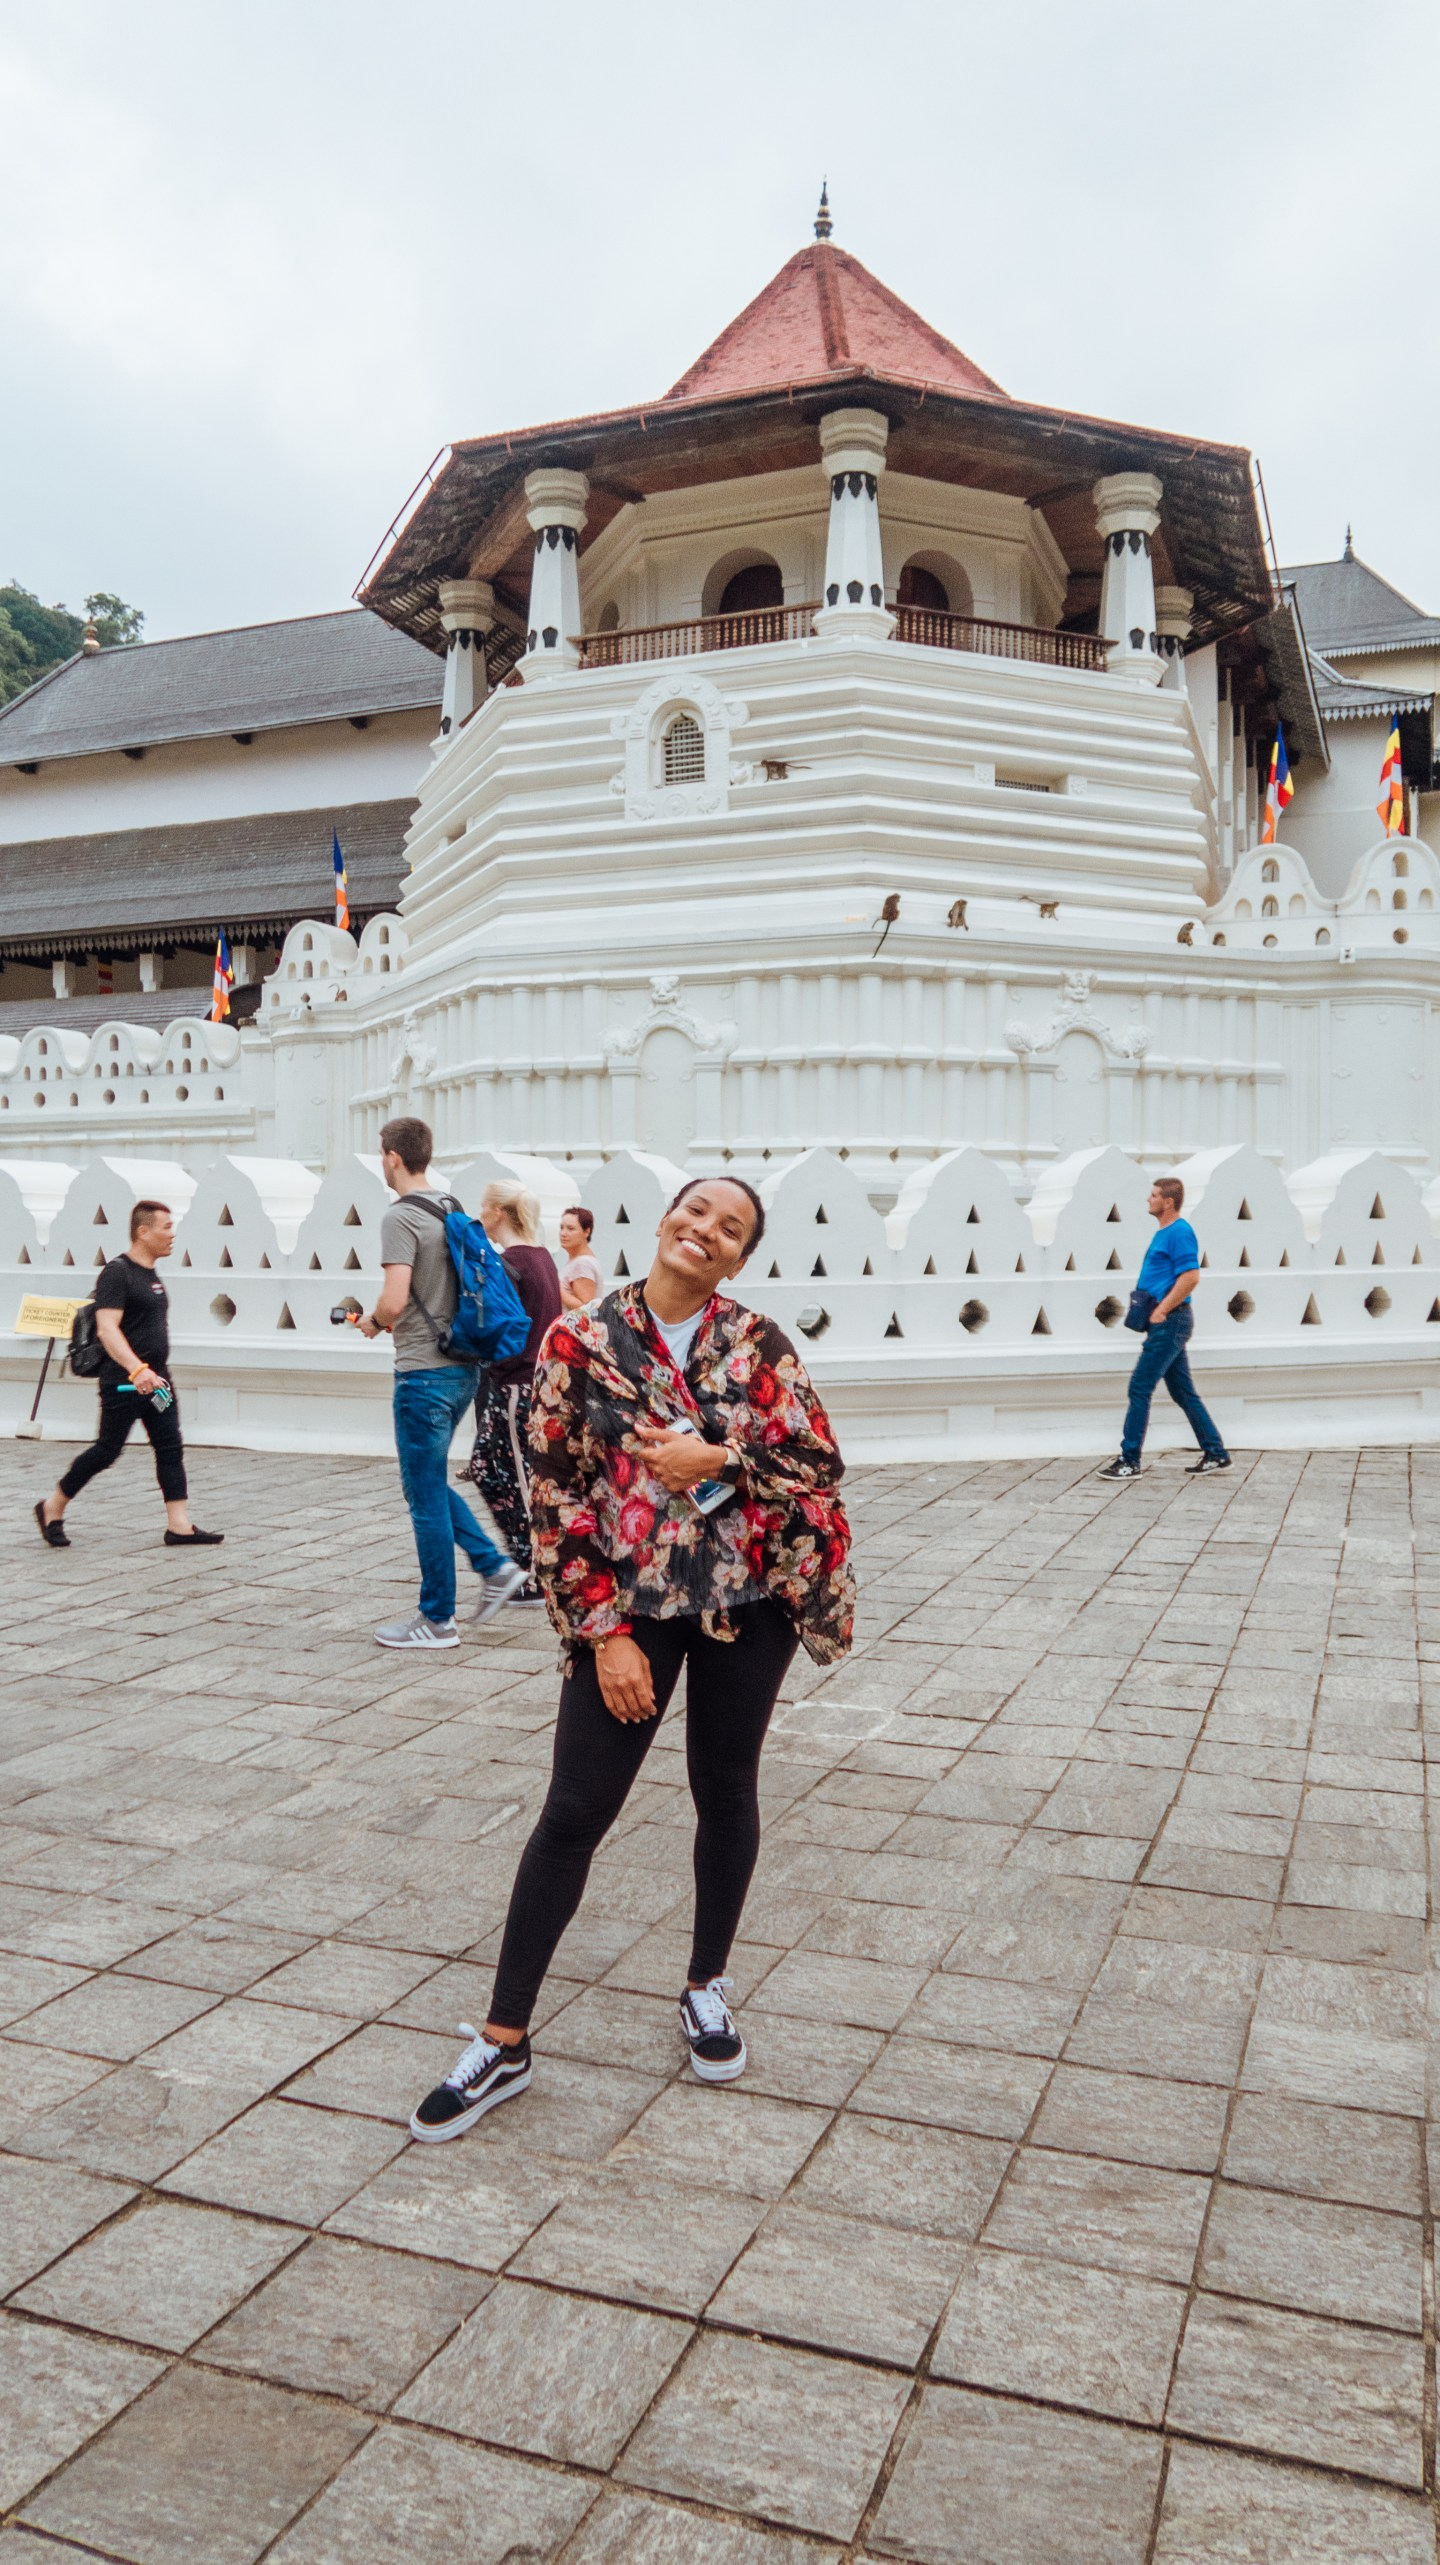 Illustrated by Sade - Woman taking photo in front of the Temple of Tooth Relic in Kandy, Sri Lanka